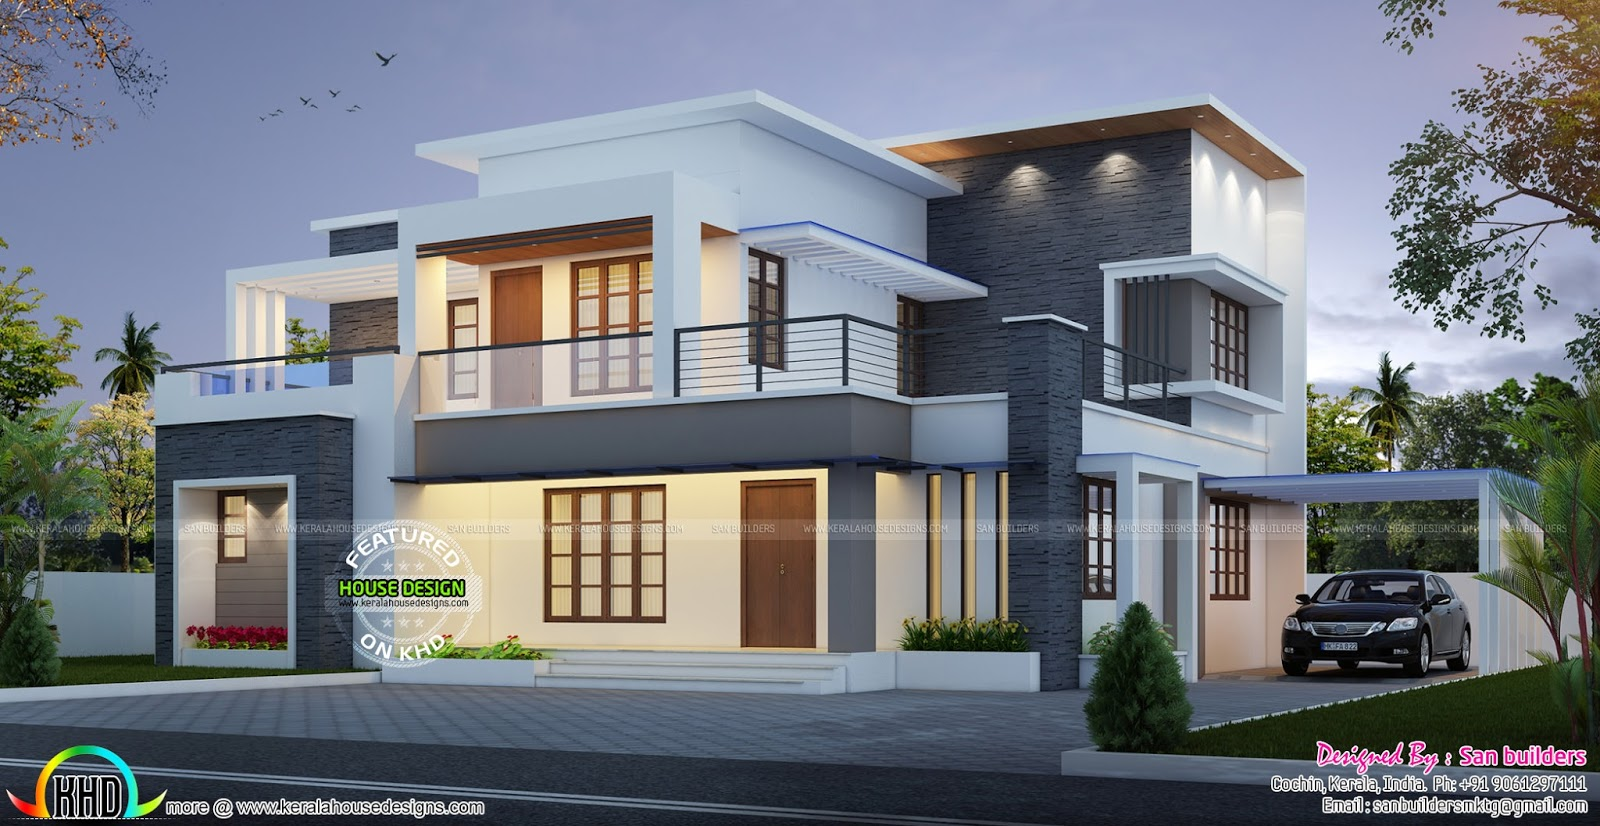 House Plans Ghana Holla Bedroom Plan Elevation With Free